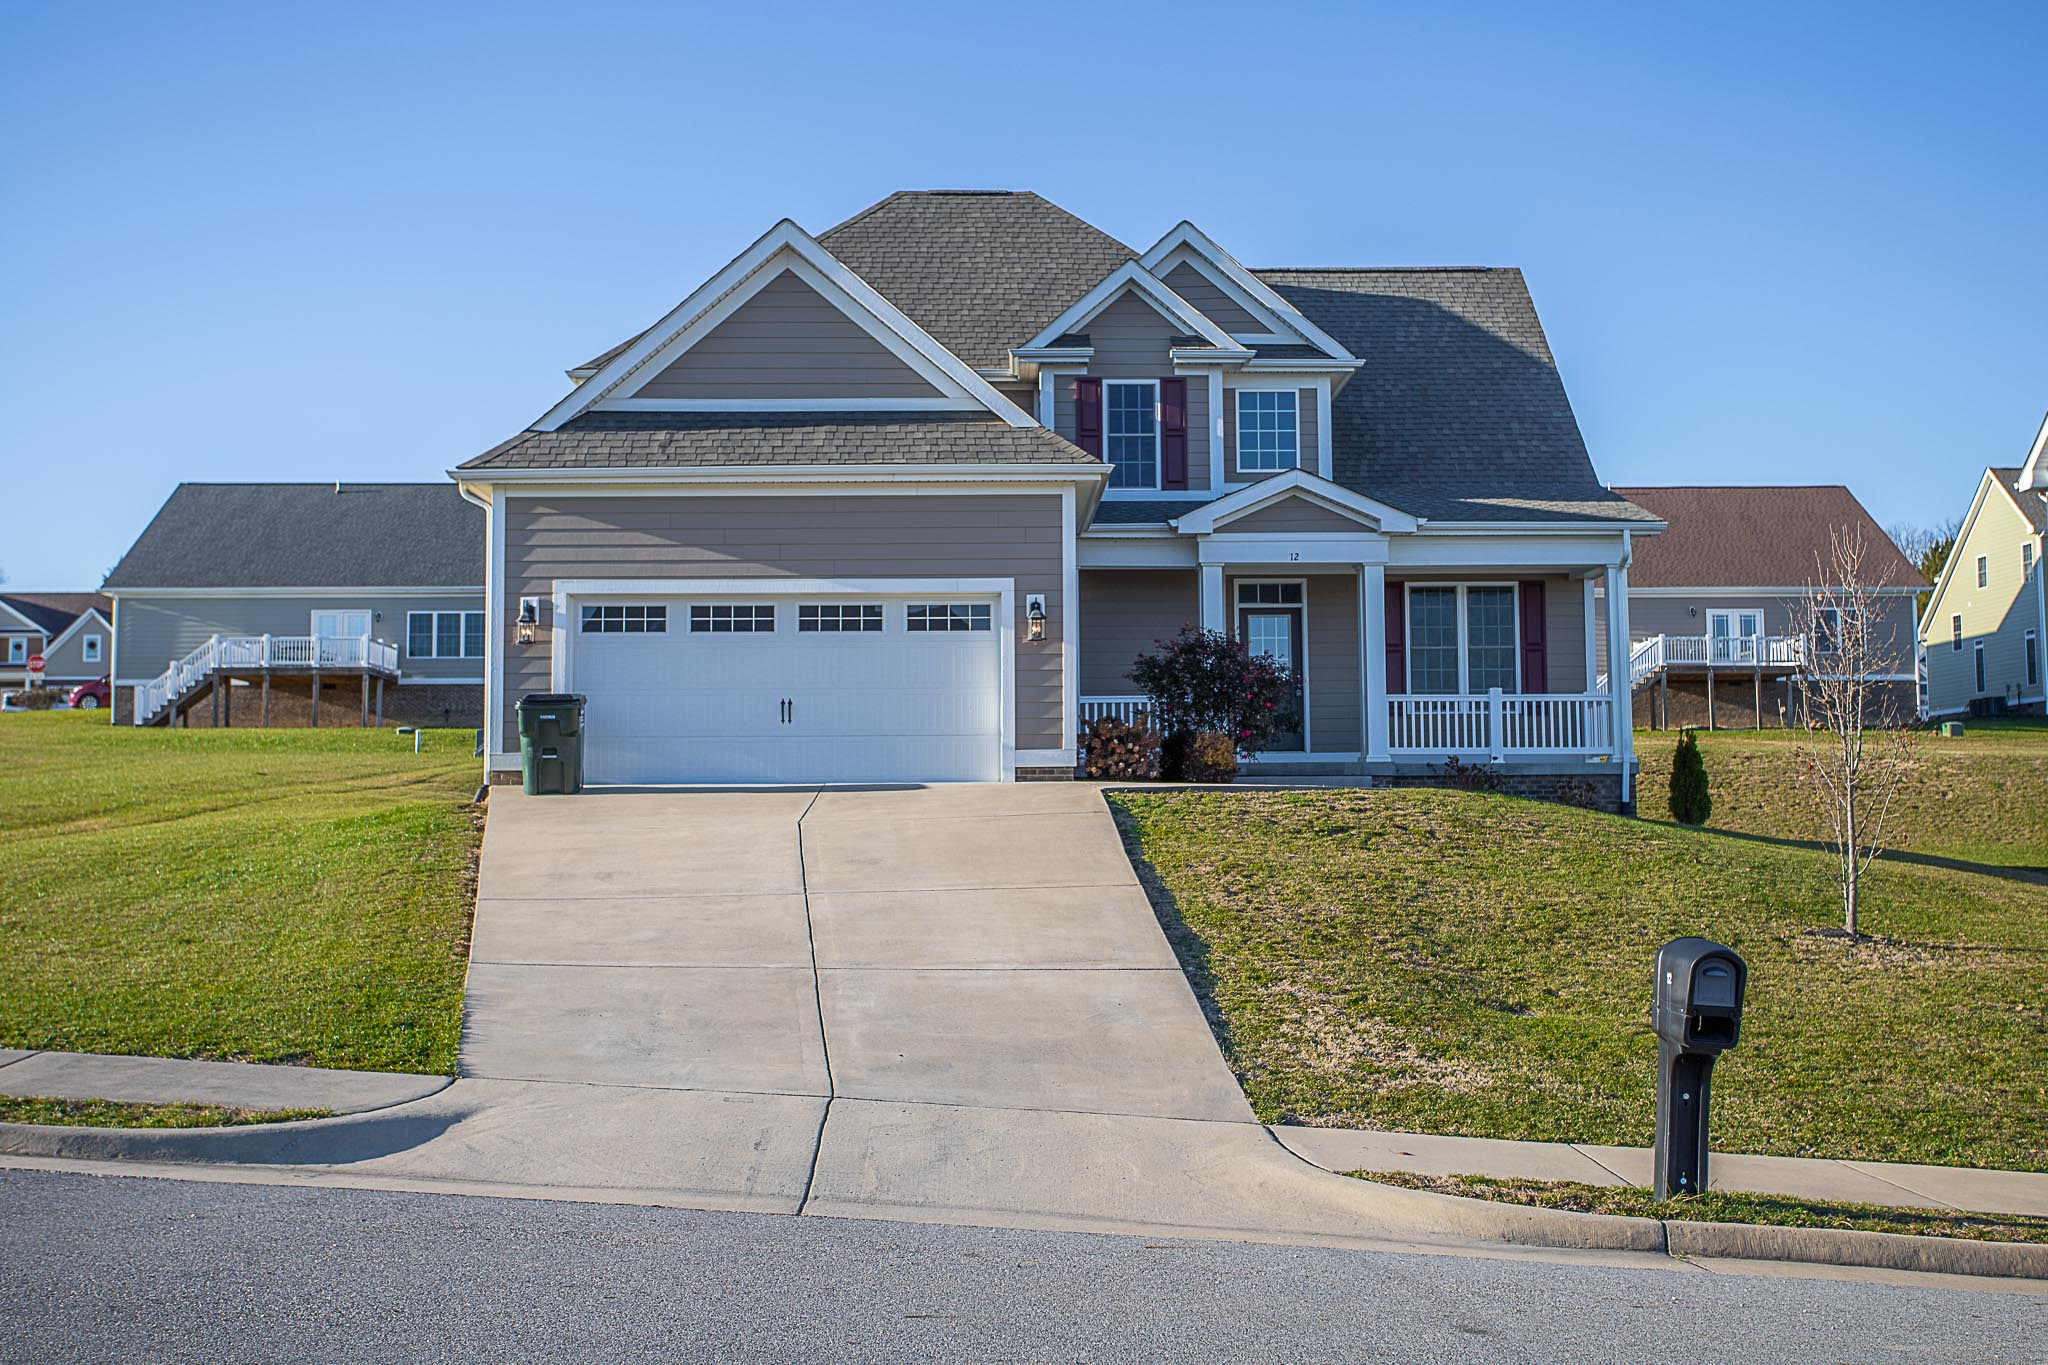 Home for Sale in Fishersville, 12 N Windsong Court